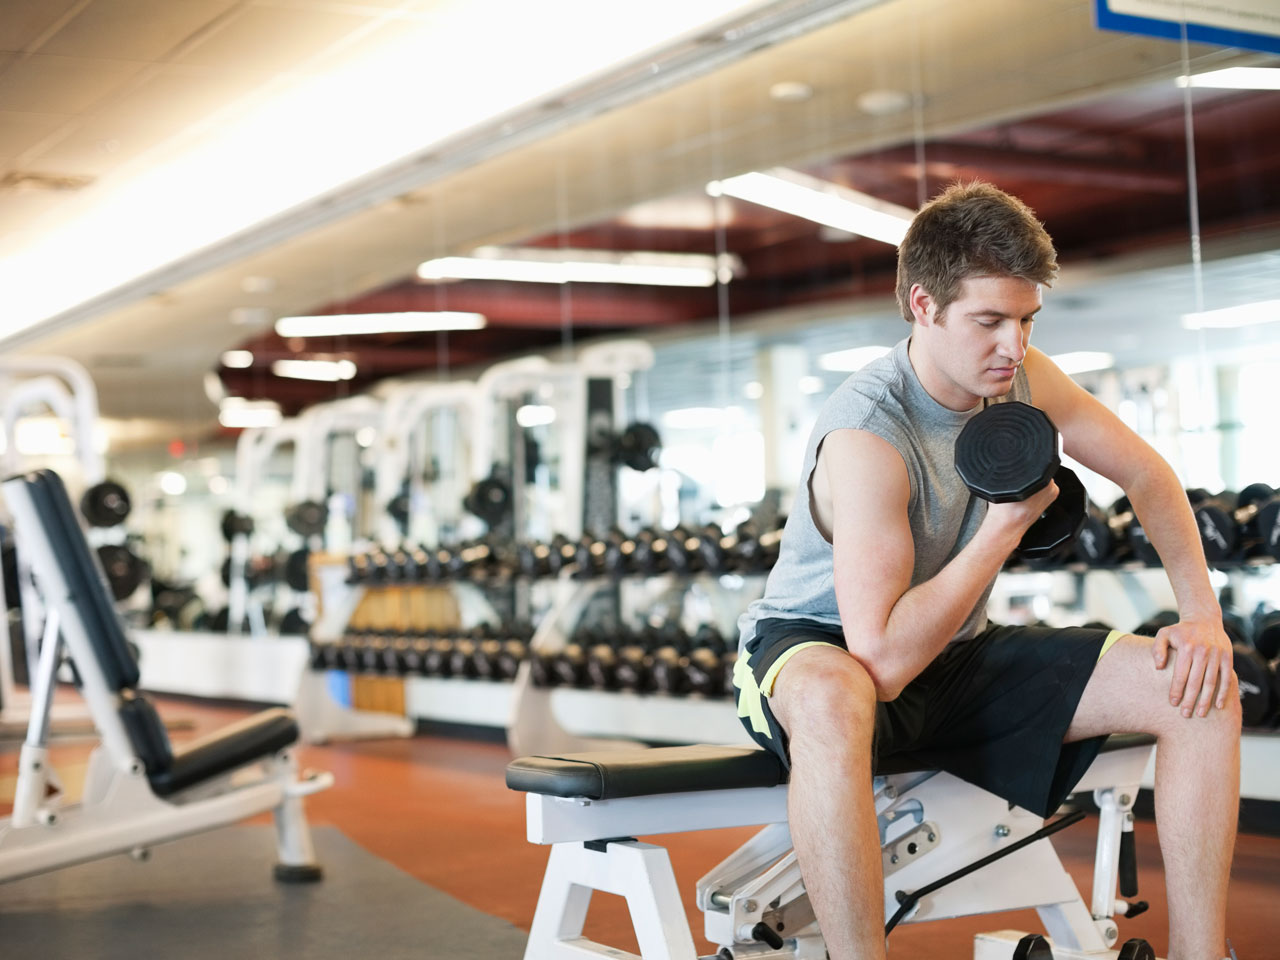 The ultimate arms workout for beginners